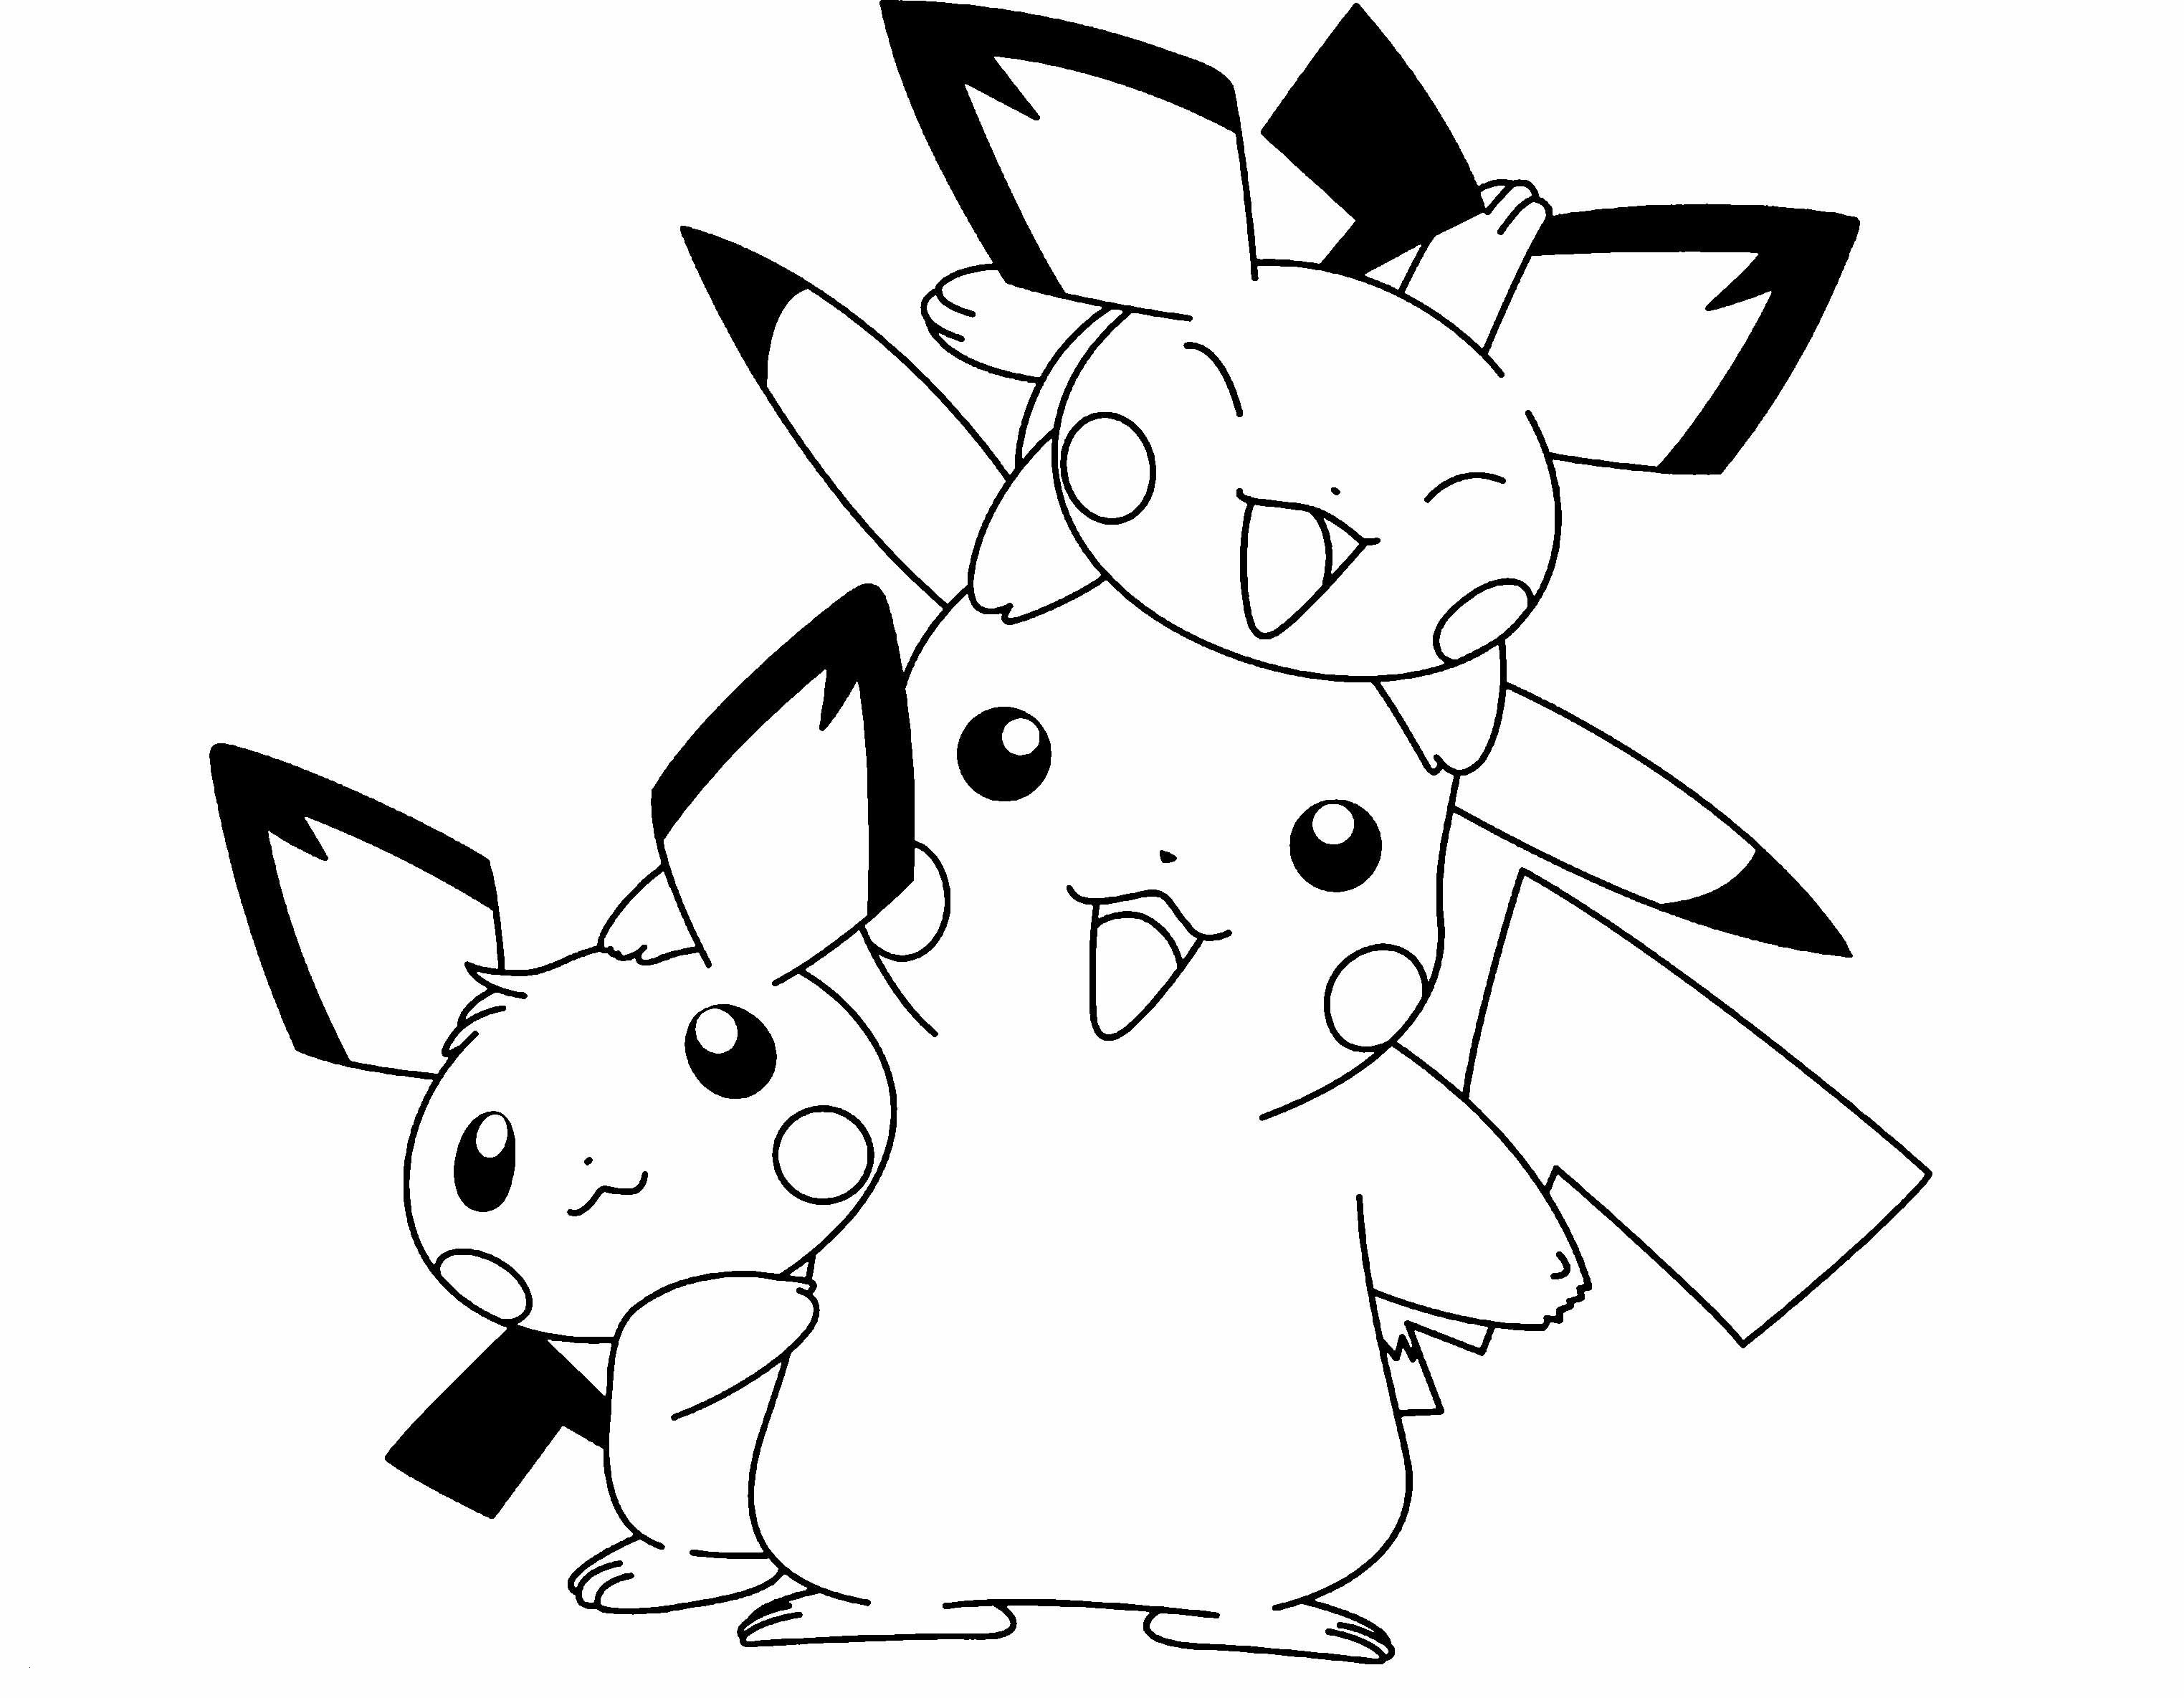 Ausmalbilder Pokemon Go Genial 24 Pikachu Coloring Pages Gallery Coloring Sheets Bild